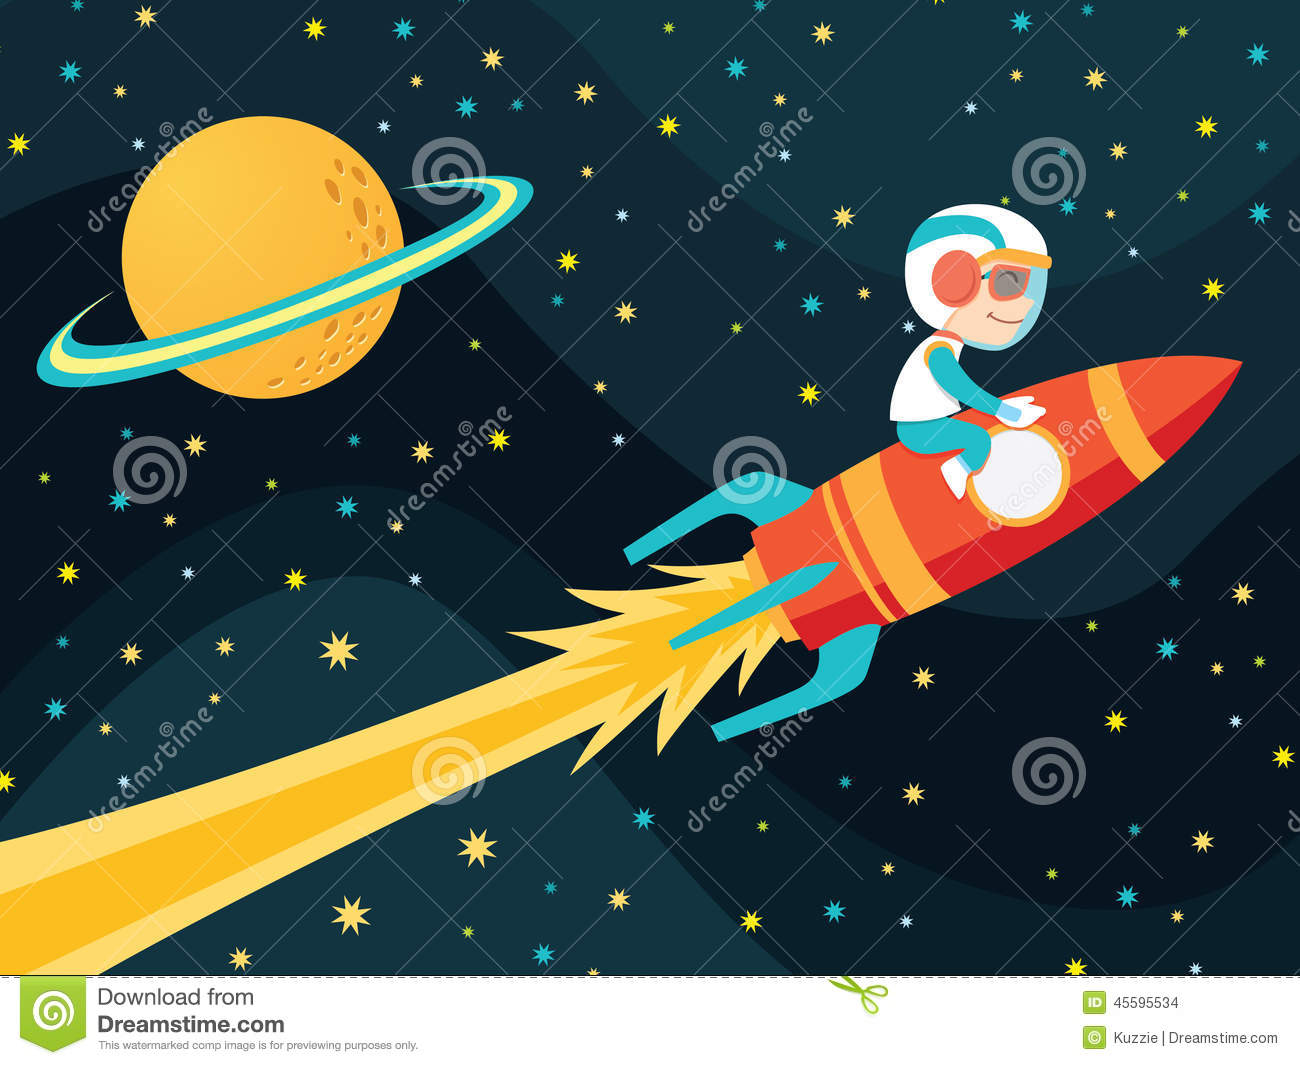 space-boy-illustration-rocket-45595534.j